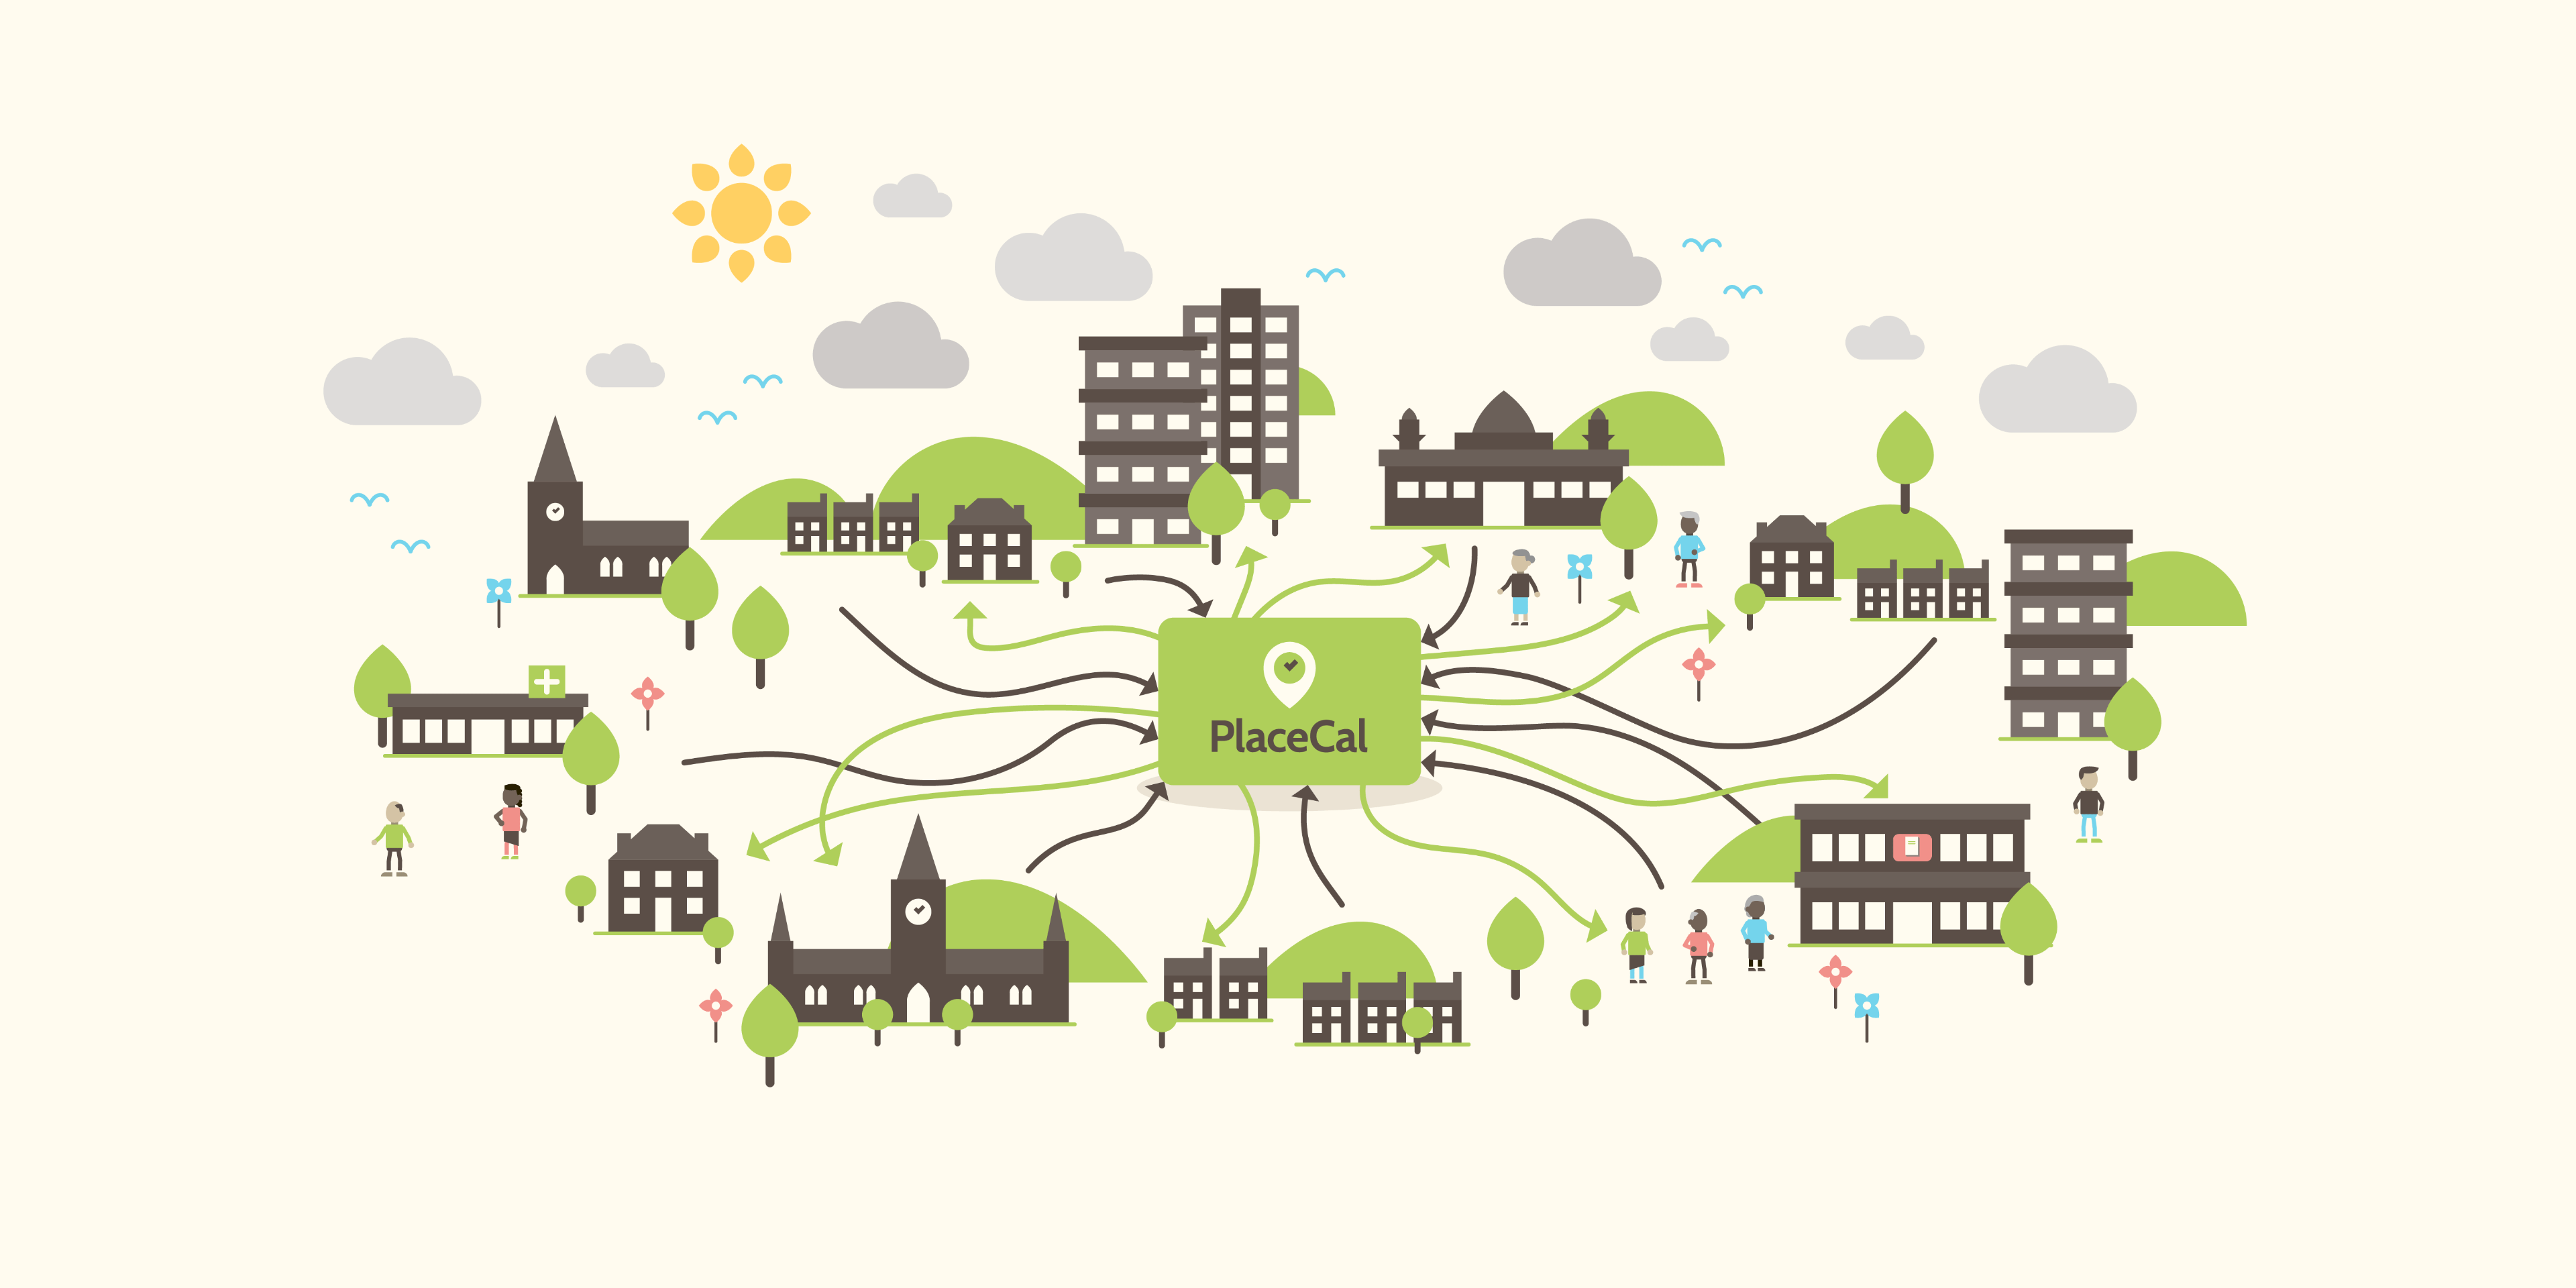 A flat graphic vector illustration against cream backdrop showing a diverse community and town scenery elements, trees, flowers, hills, clouds, houses, tower blocks, town hall, church, mosque, library, clinic interacting with arrows pointing playfully both into and out from a block representing PlaceCal at its centre.